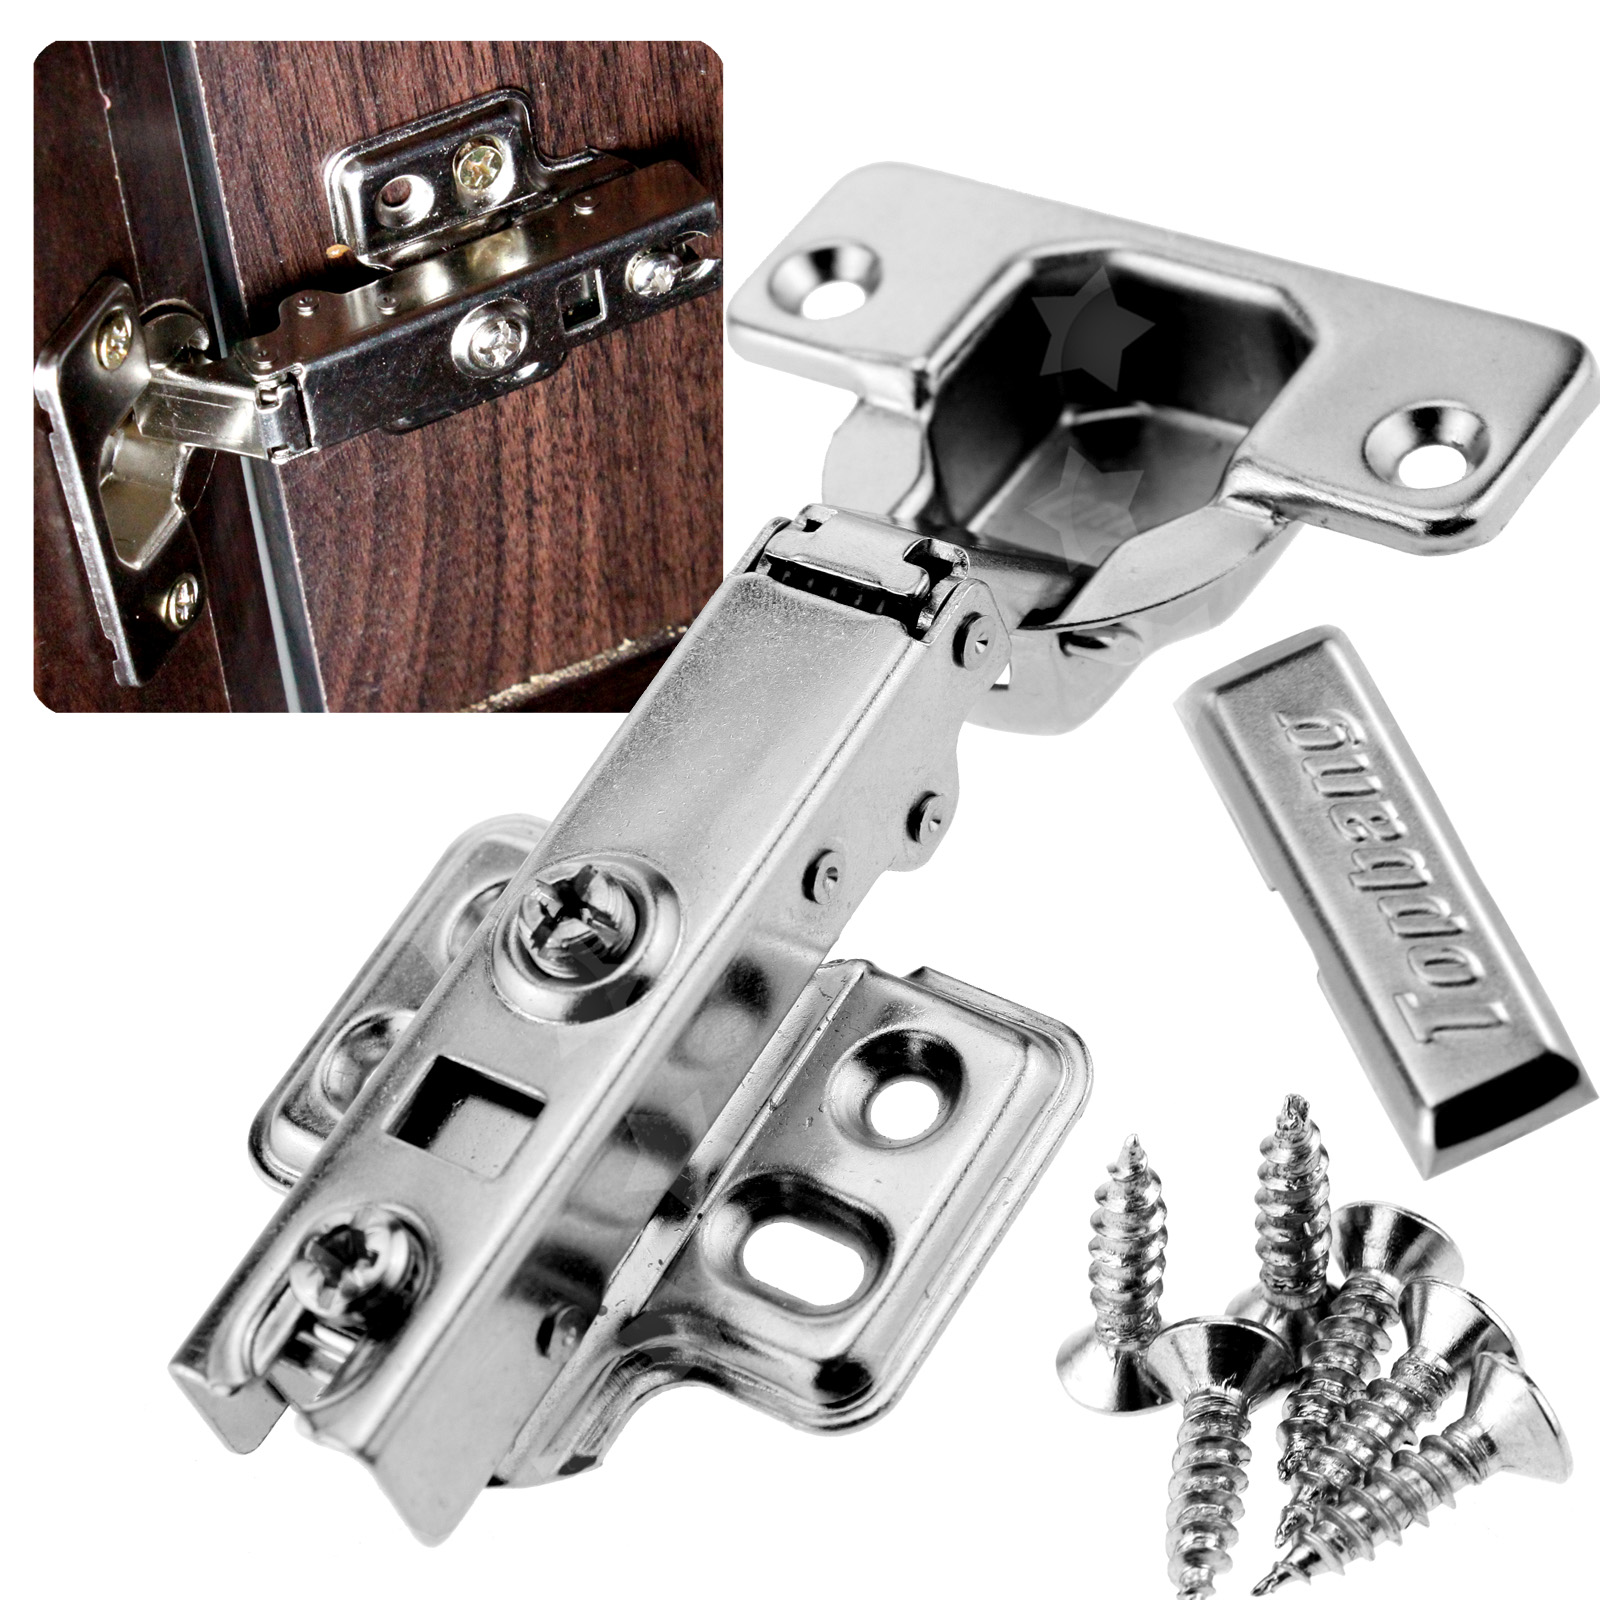 Kitchen Cabinet Hinges Soft Close: Top Quality Kitchen Cabinet Door Soft Close Hydraulic